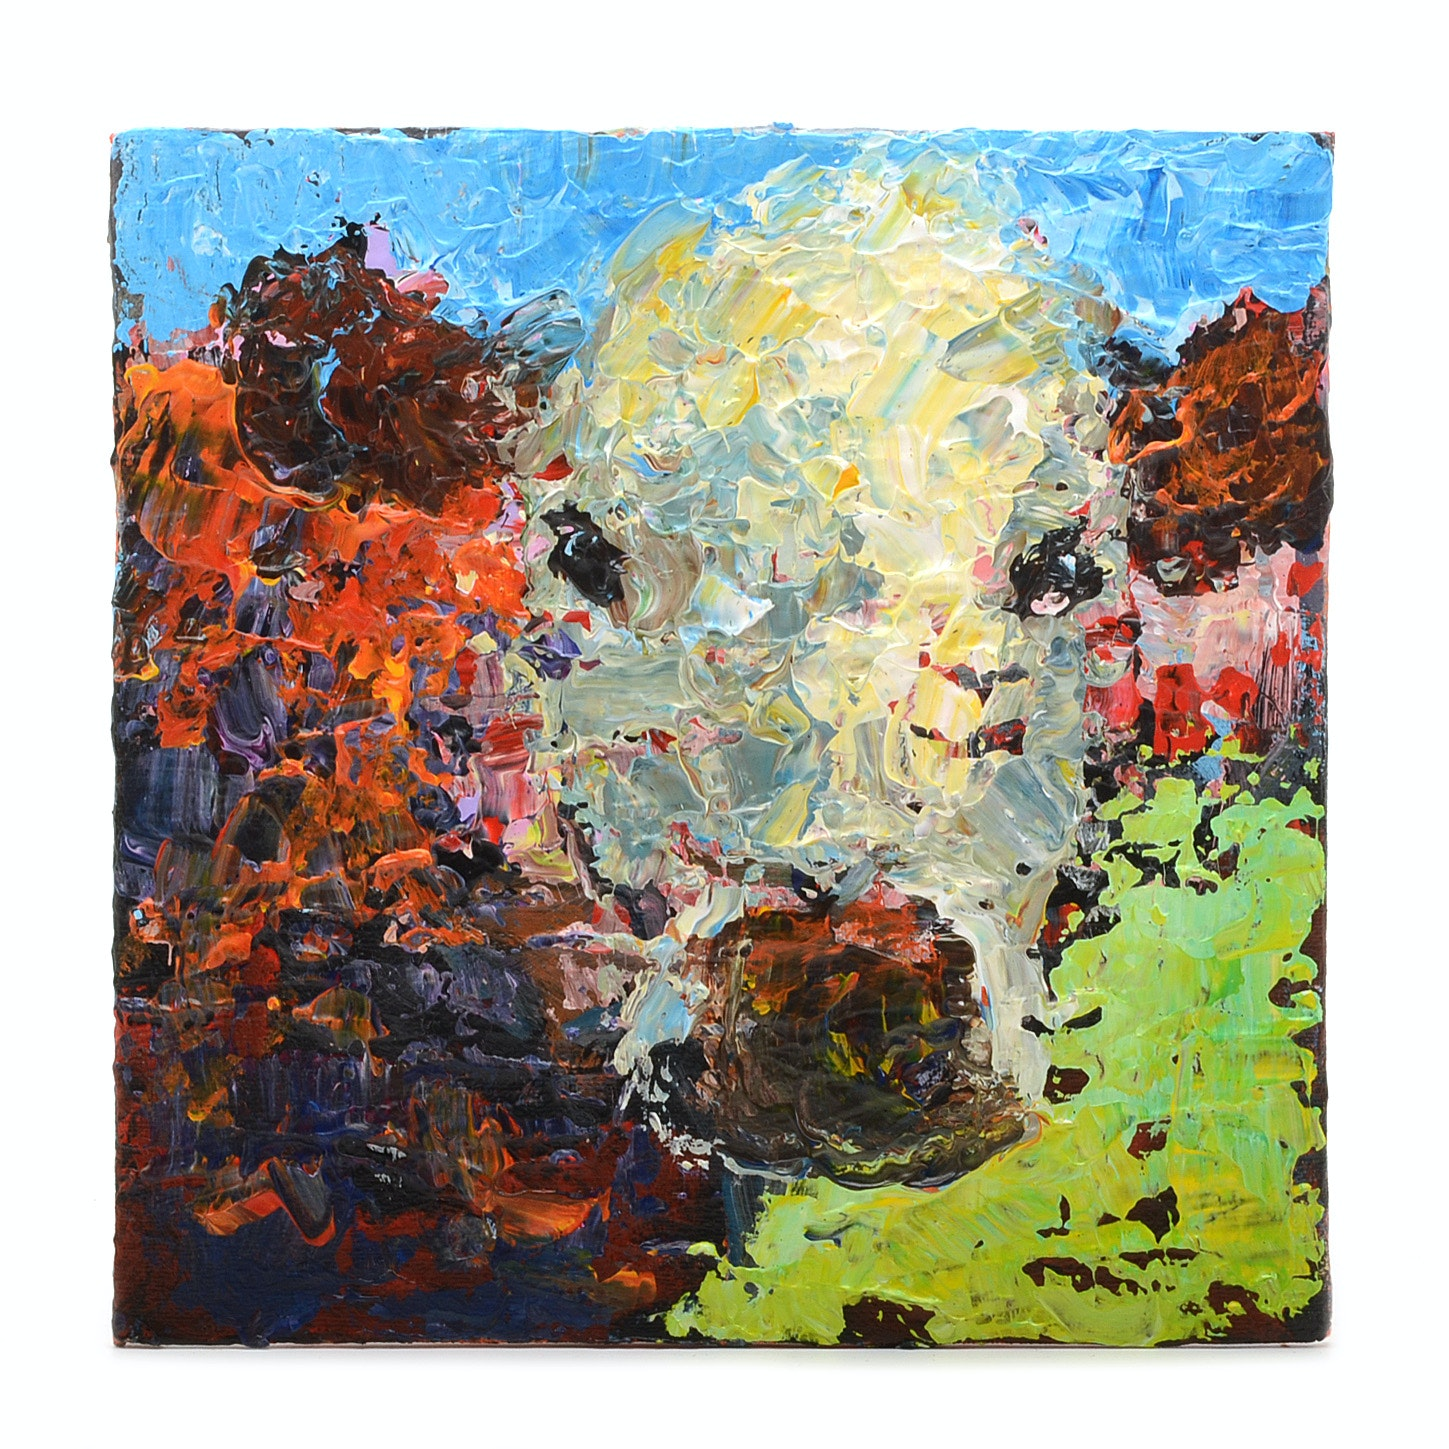 Elle Rains Original Acrylic Painting on Canvas Board of a Cow